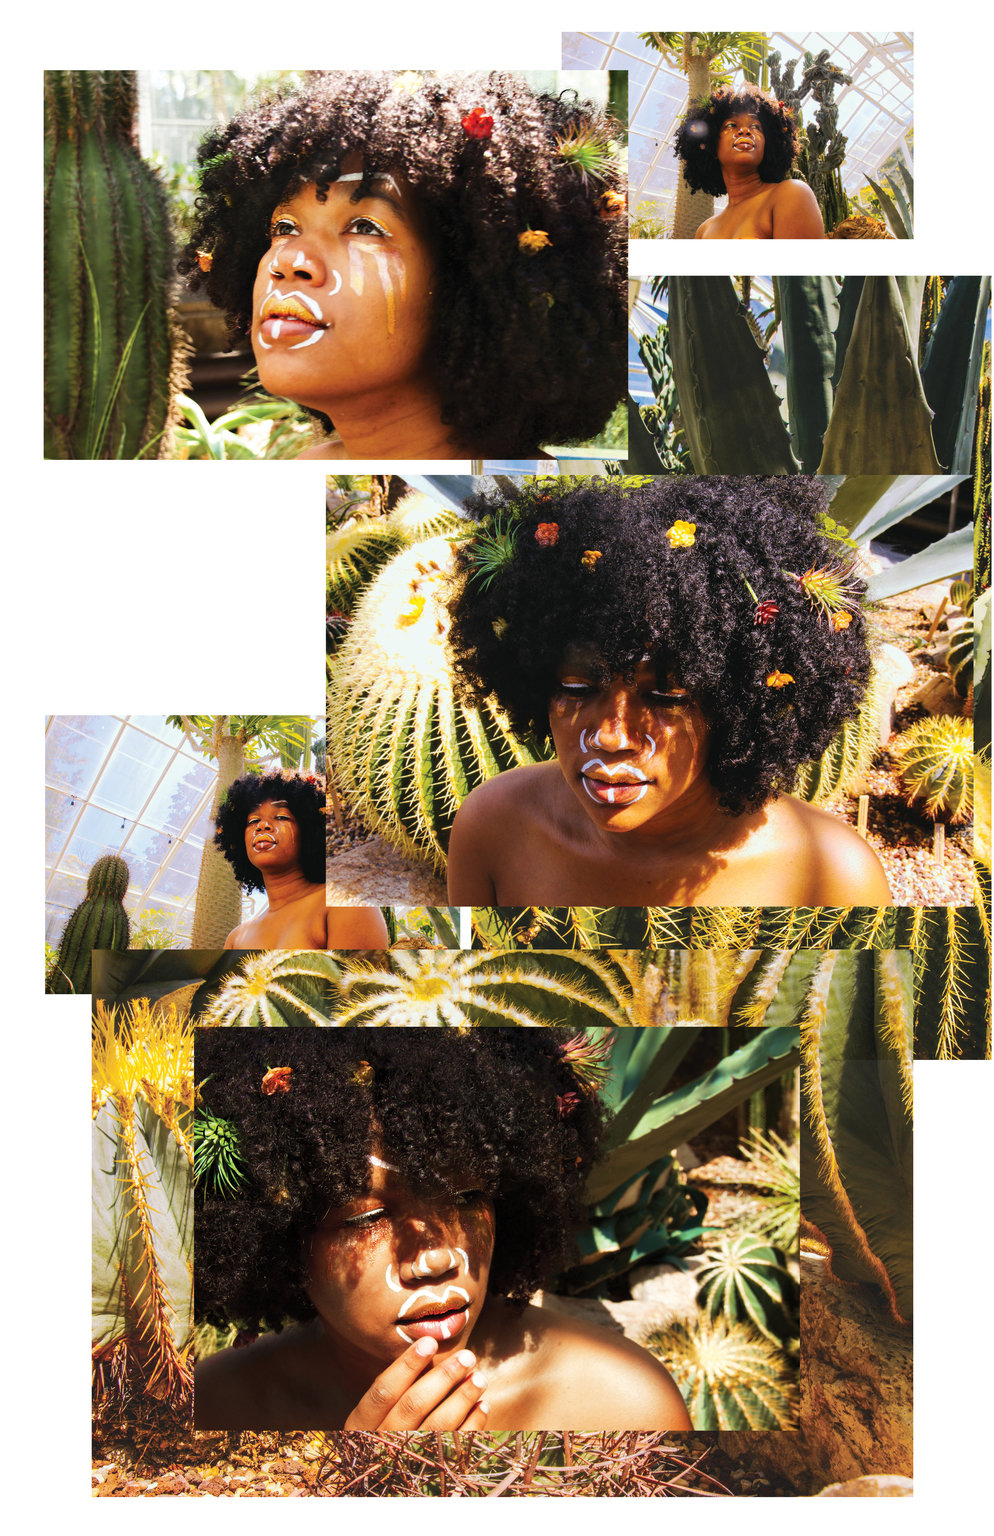 I'M NOT MAD ; JUST FIGHTING   Director of photography | Art Direction- Bryanna Jones; Model- Channing Moore, Photo shoot inspired by Black Femme Experience